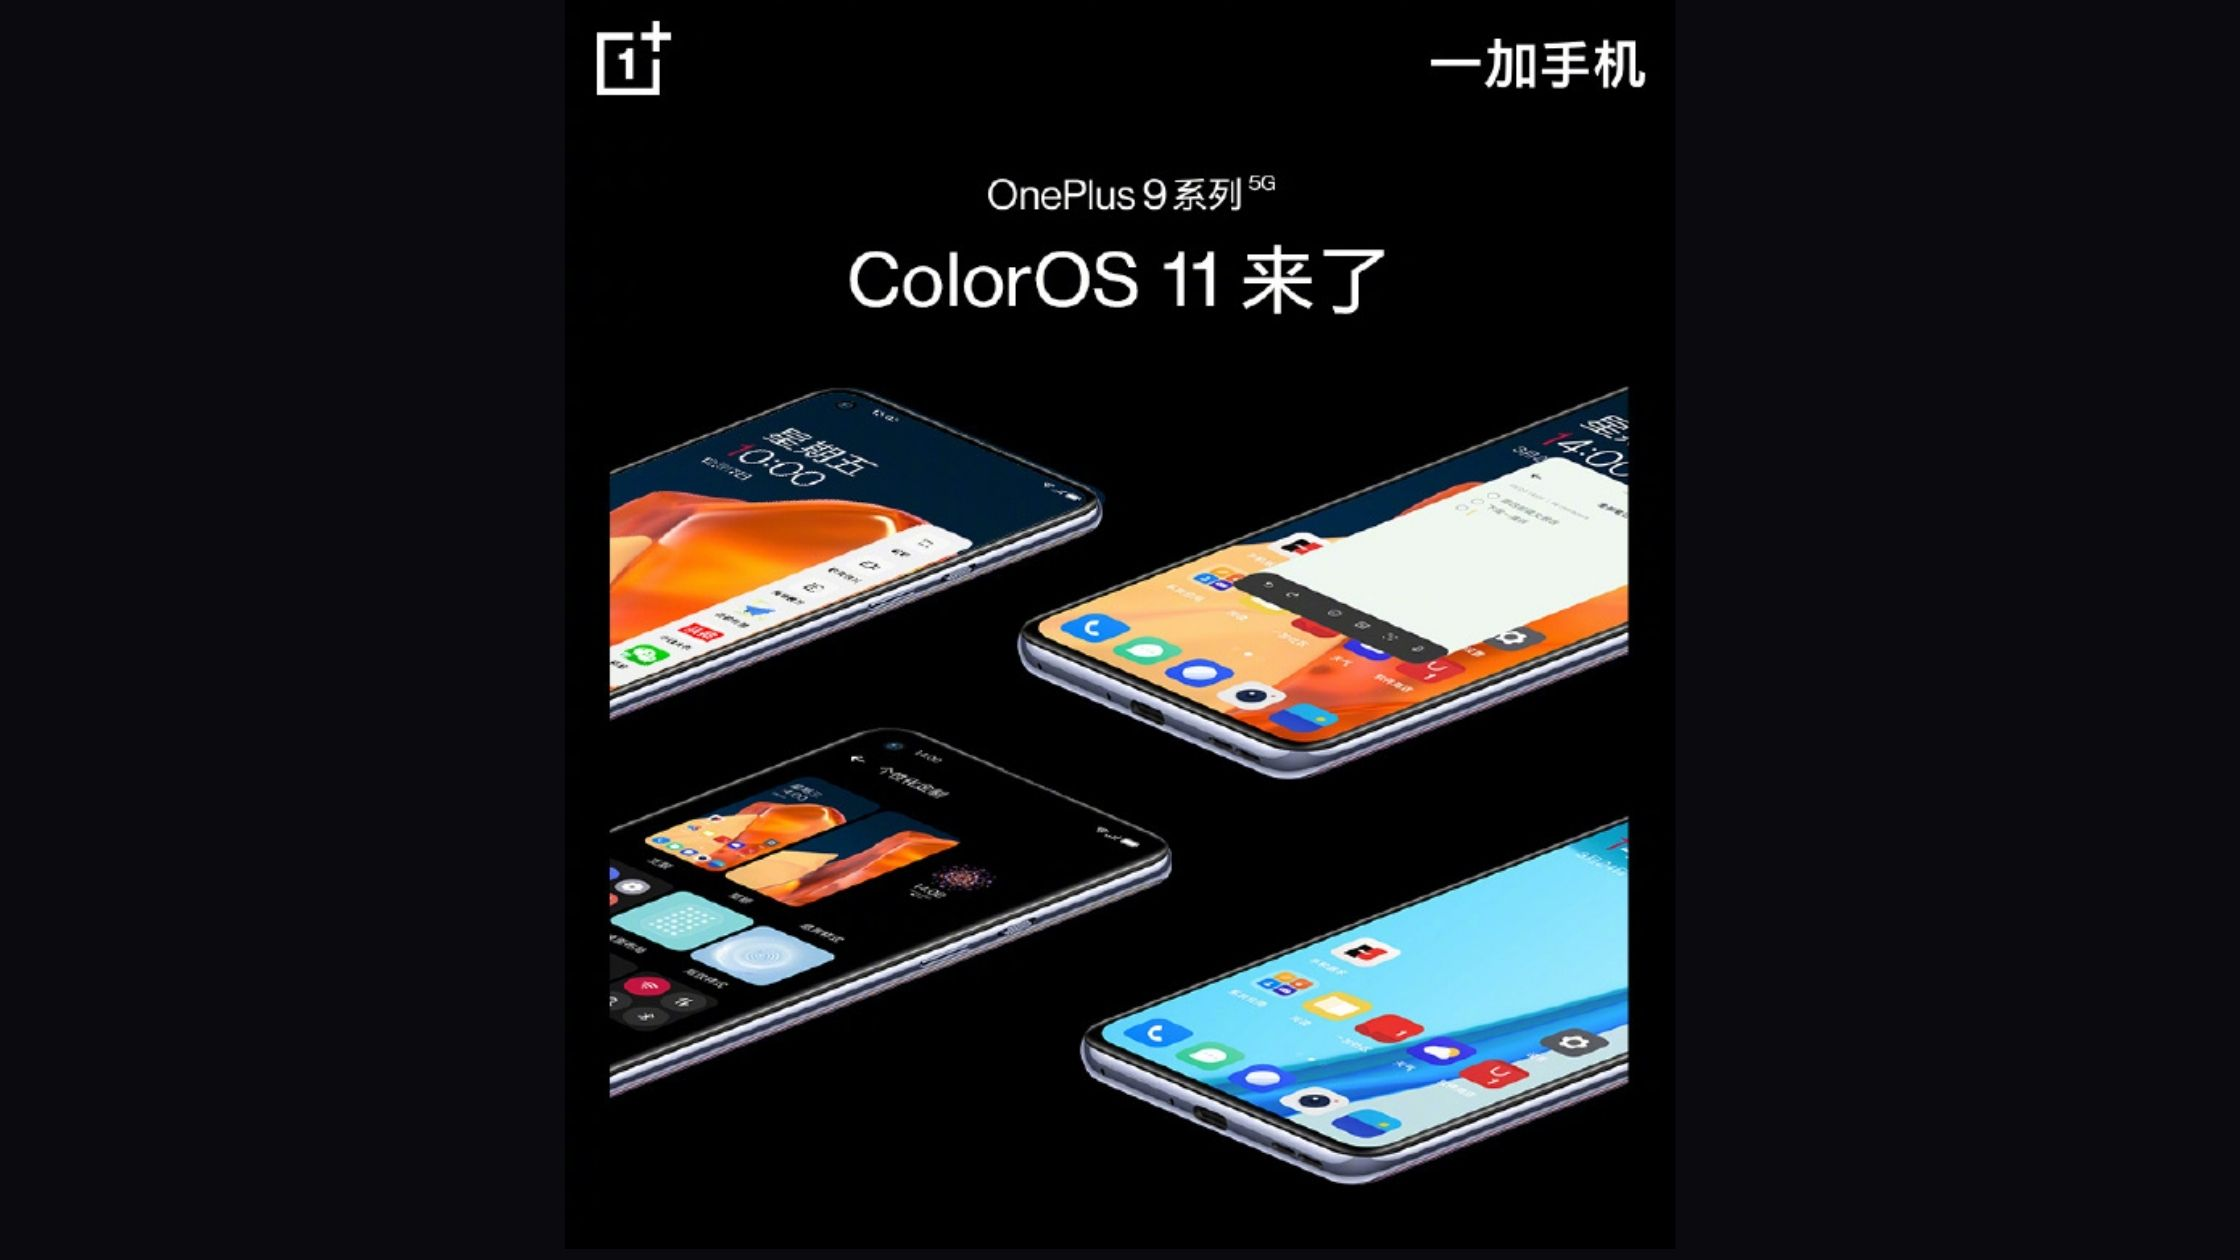 OnePlus 9 and color os